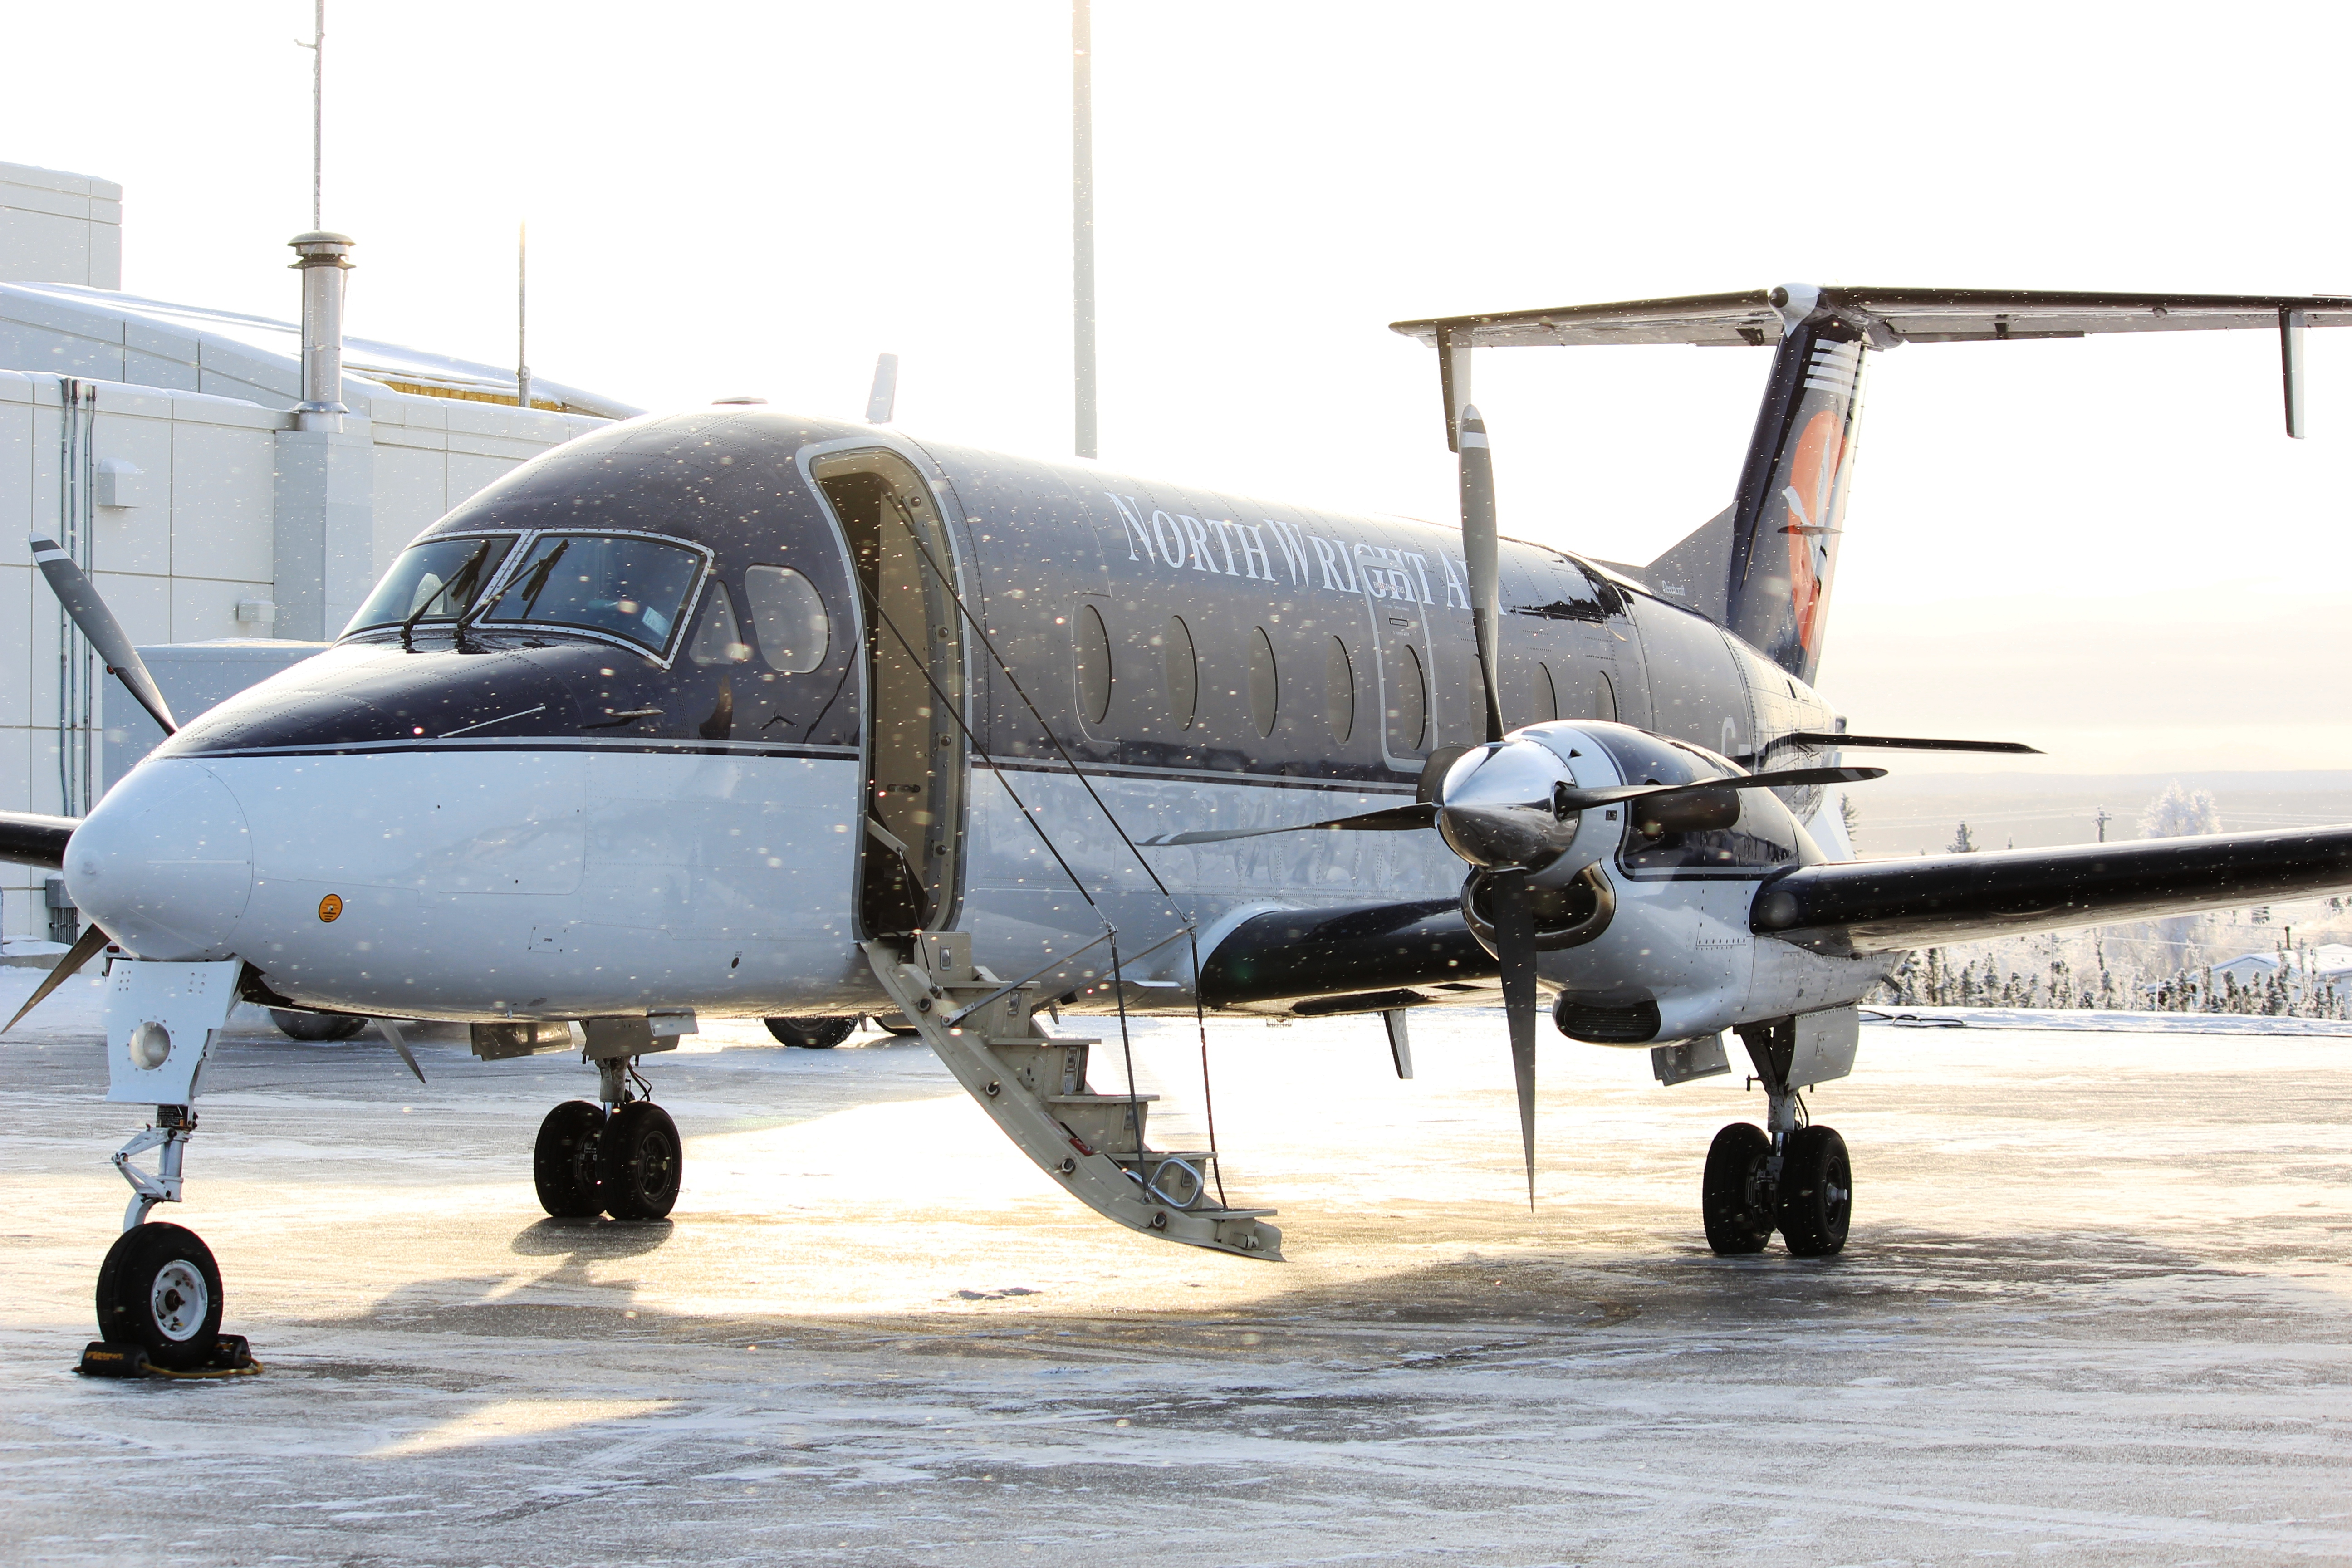 North-Wright Airways - Beechcraft 1900 on the runway at Norman Wells Airport in Norman Wells, Northwest Territories